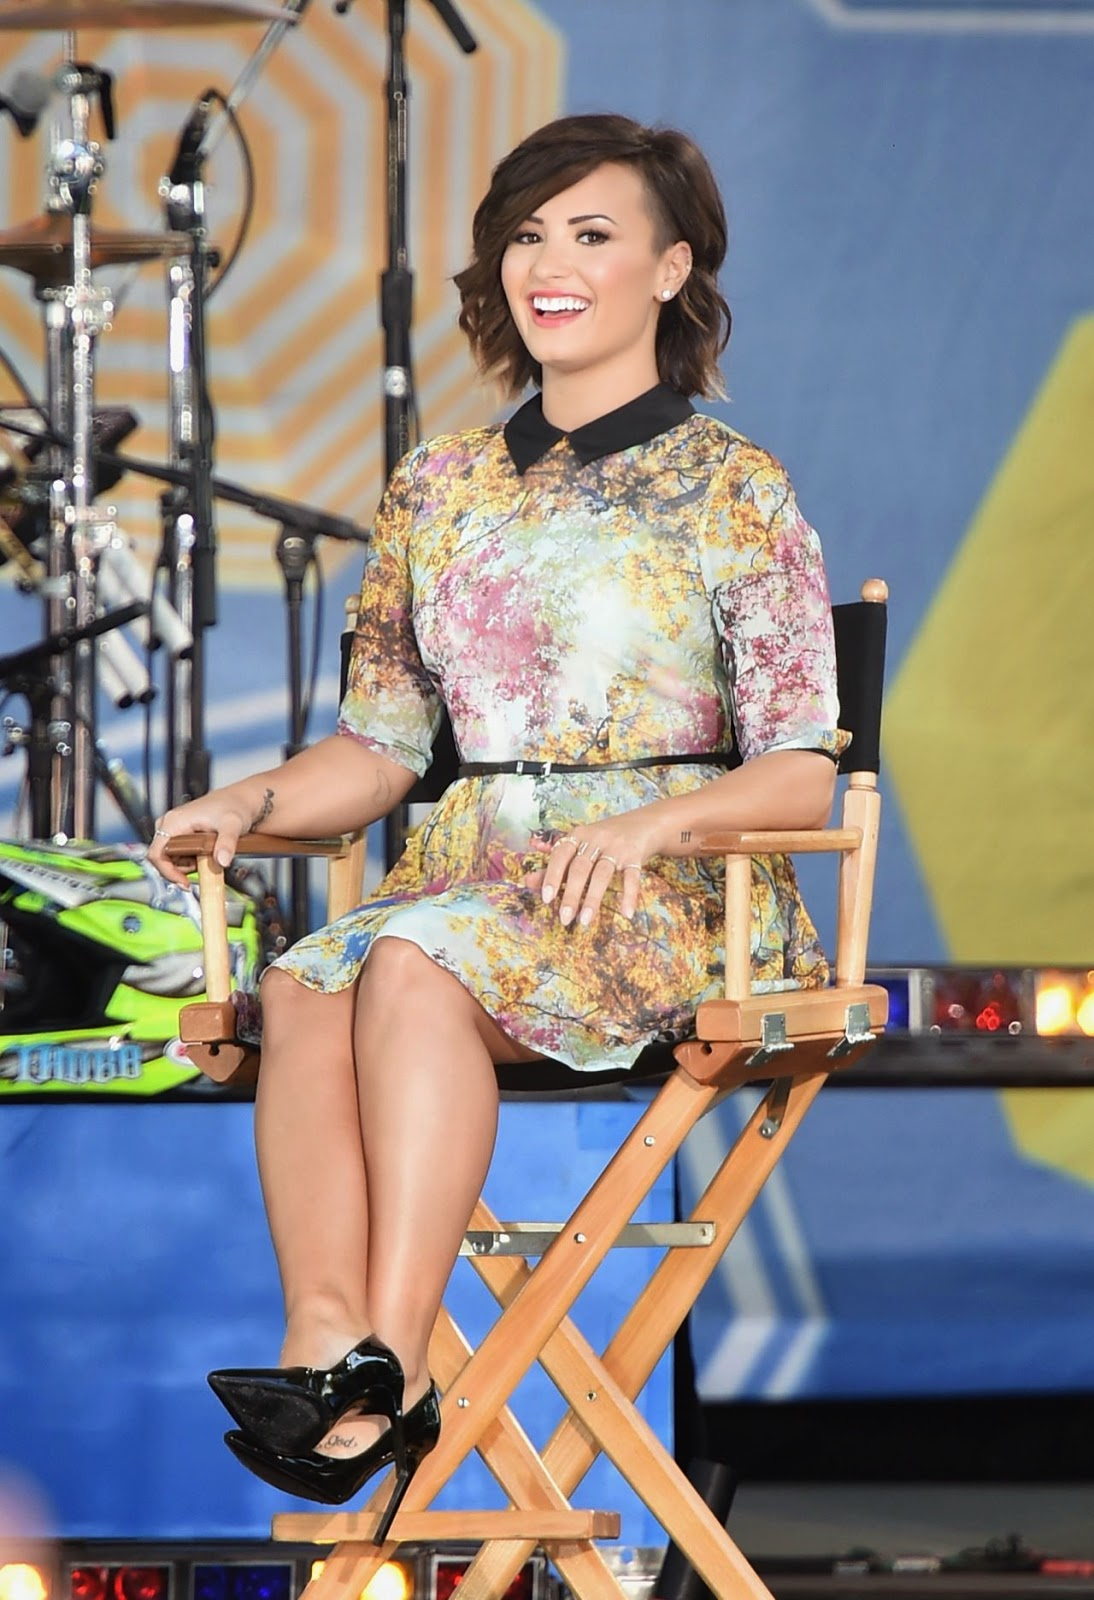 Demi Lovato attends Good Morning America in a Ted Baker London dress